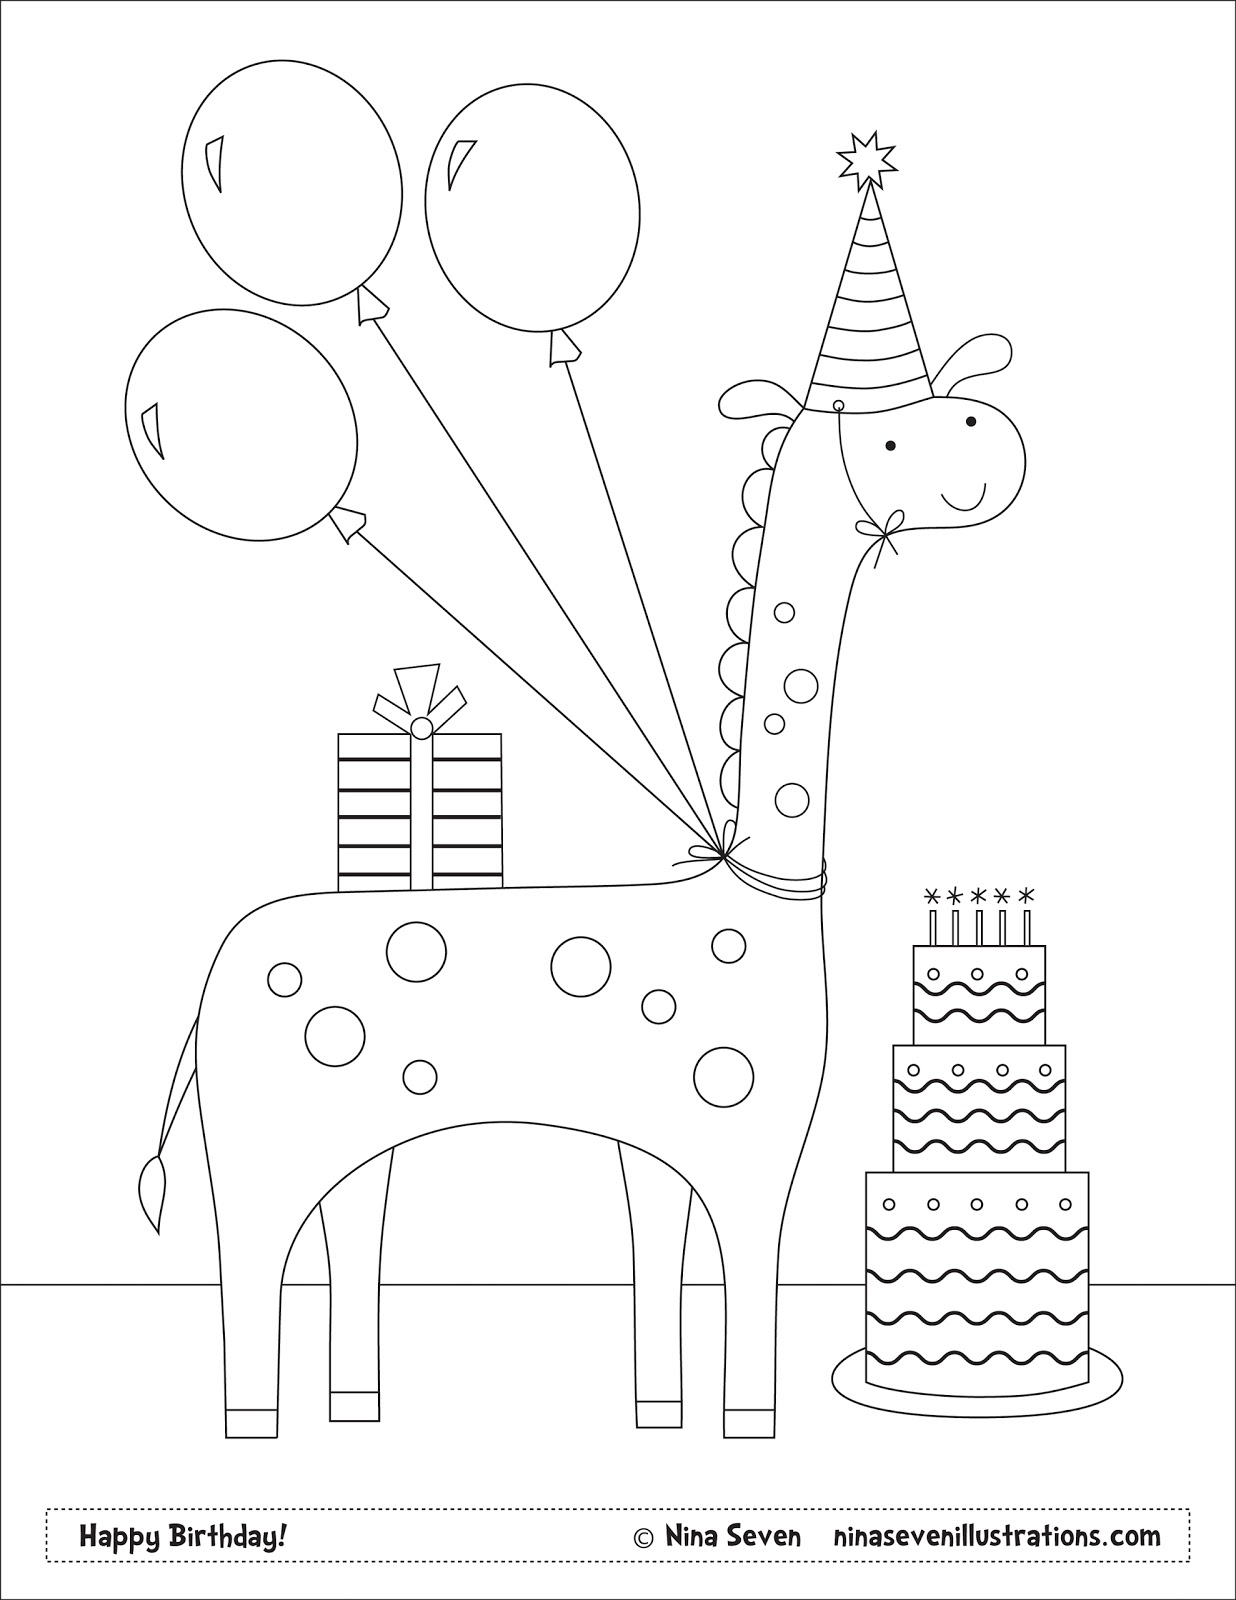 personalized happy birthday coloring pages ; personalized-happy-birthday-coloring-pages-7-g-happy-birthday-coloring-pages